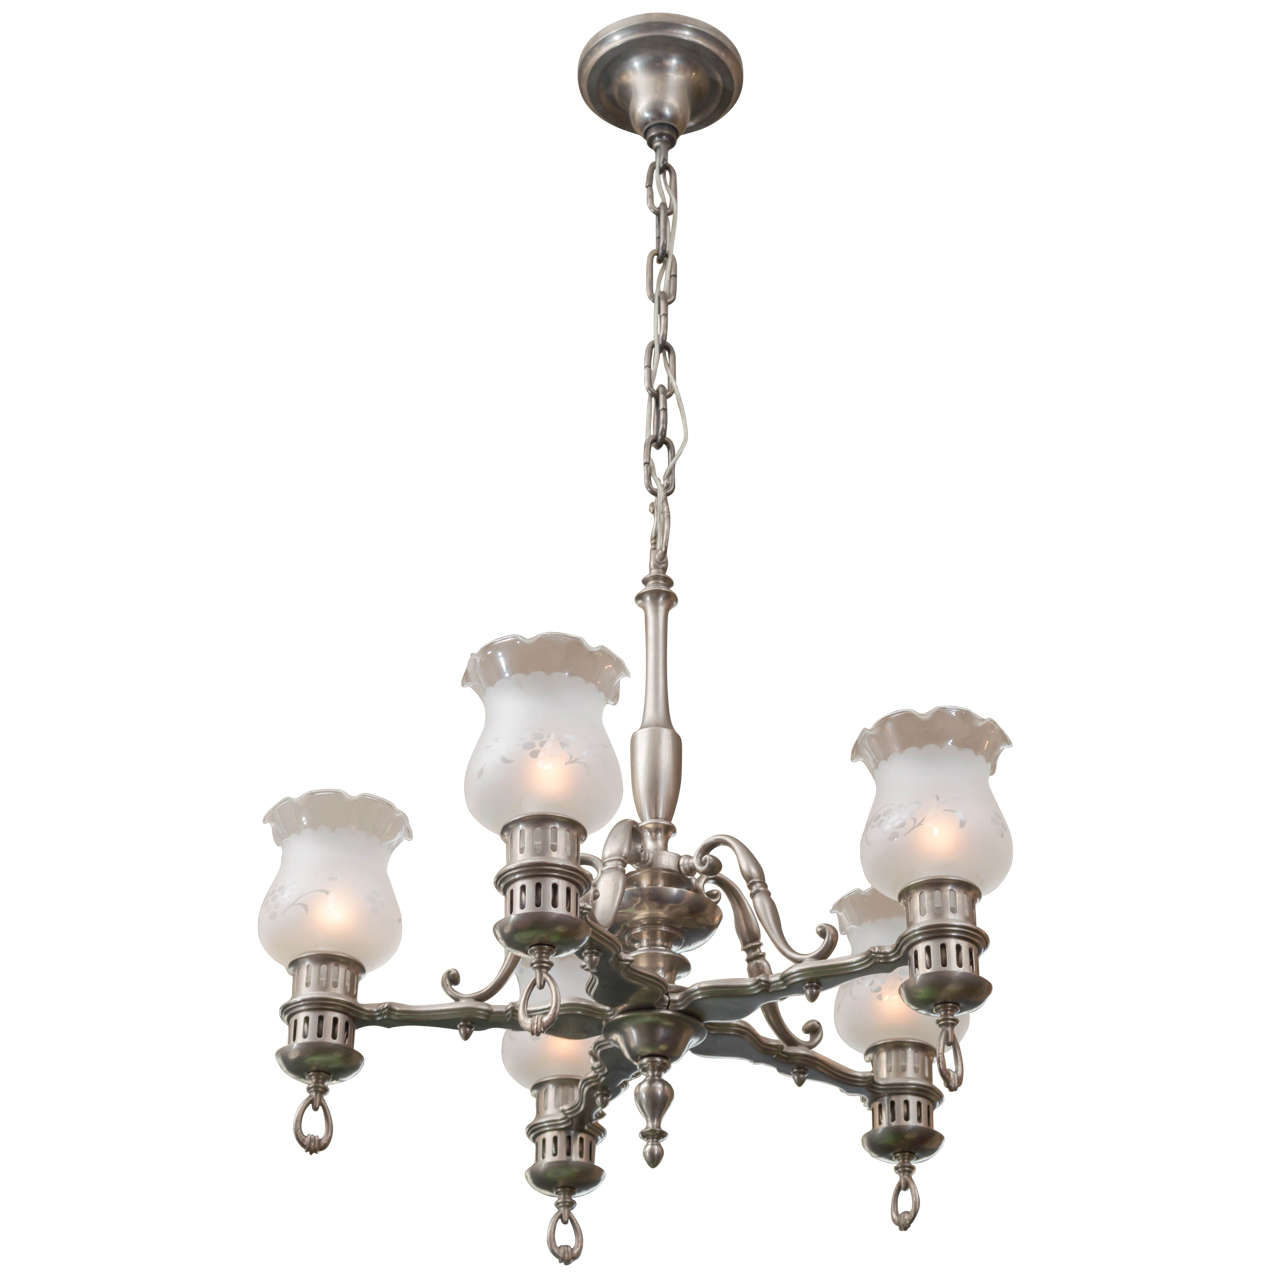 Five arm brushed nickel chandelier colonial style for sale at 1stdibs five arm brushed nickel chandelier colonial style for sale aloadofball Image collections